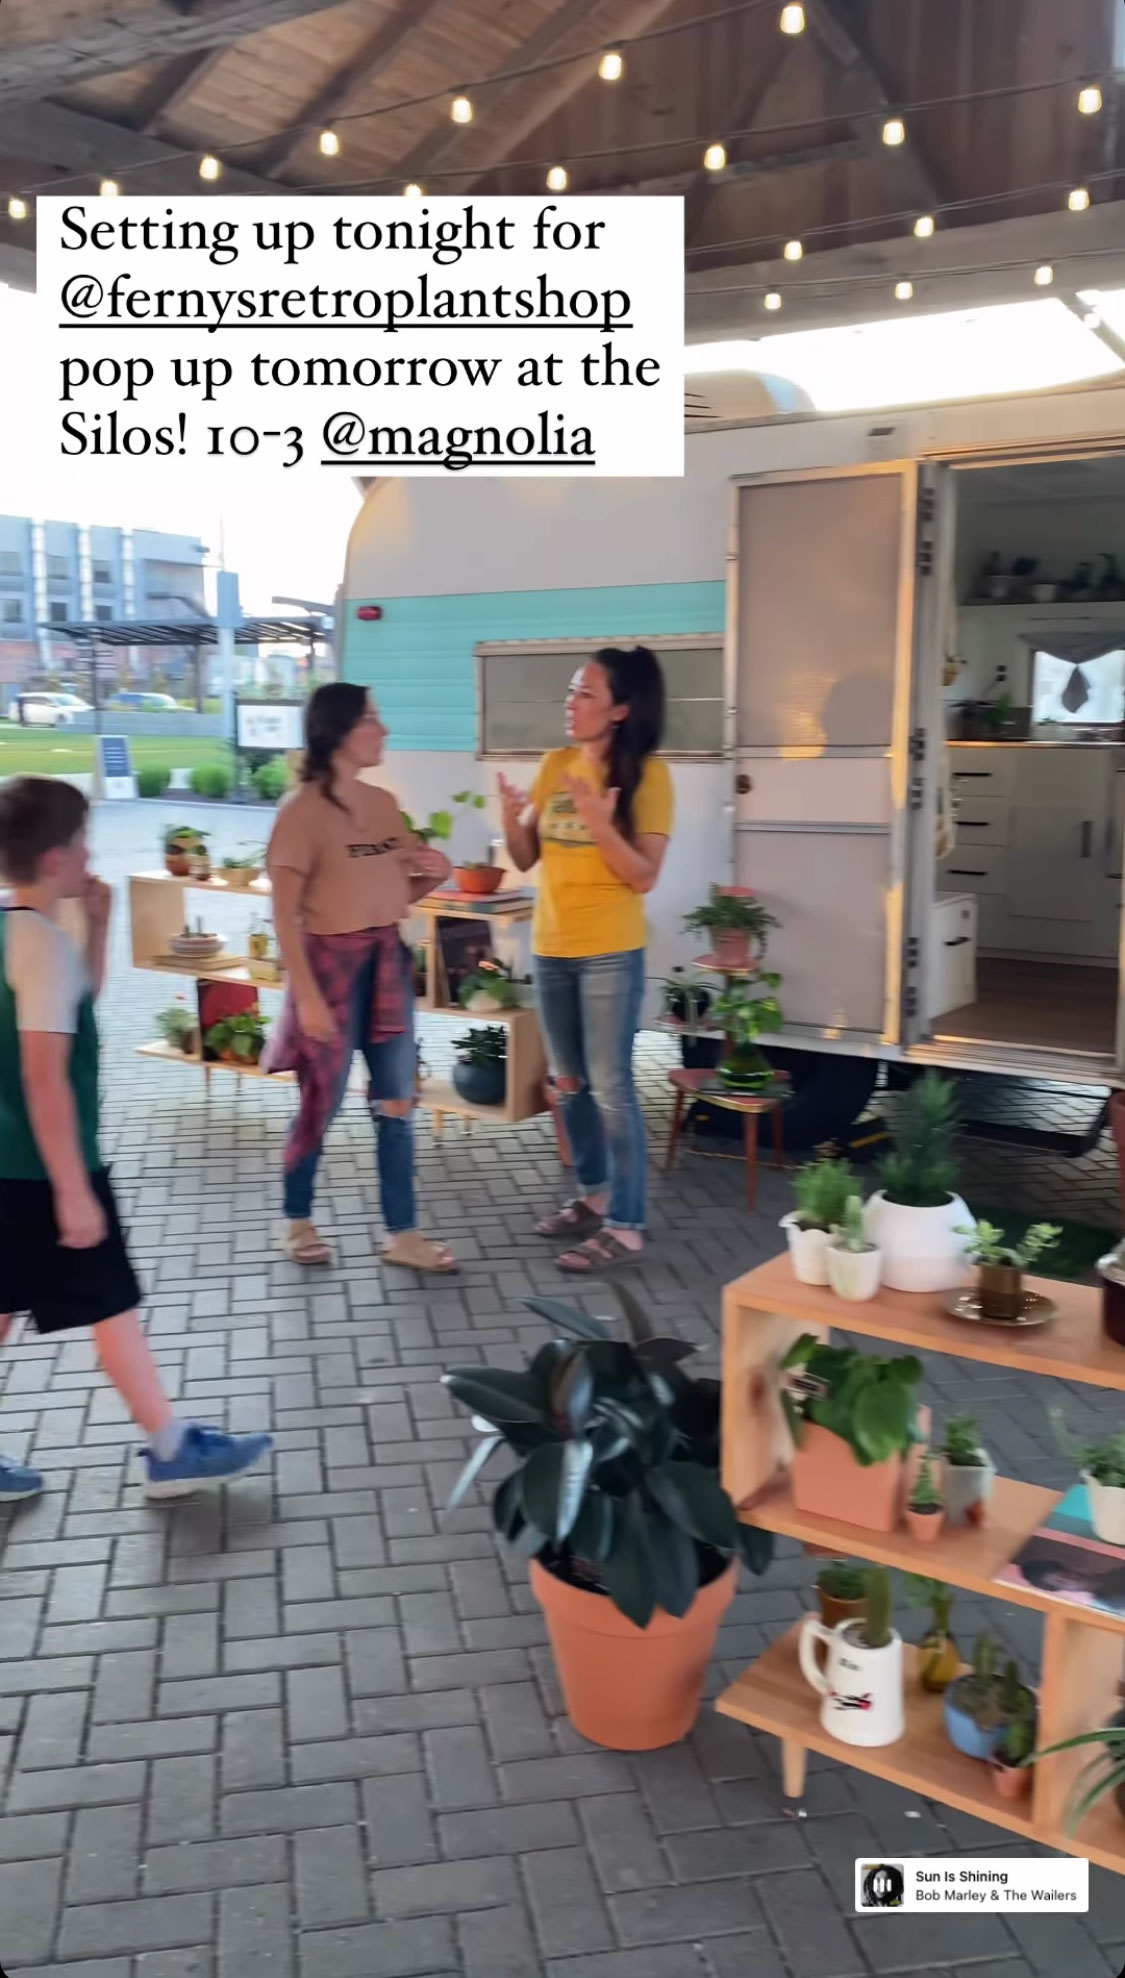 joanna-gaines-sister-mikey-fernys-pop-up-magnolia